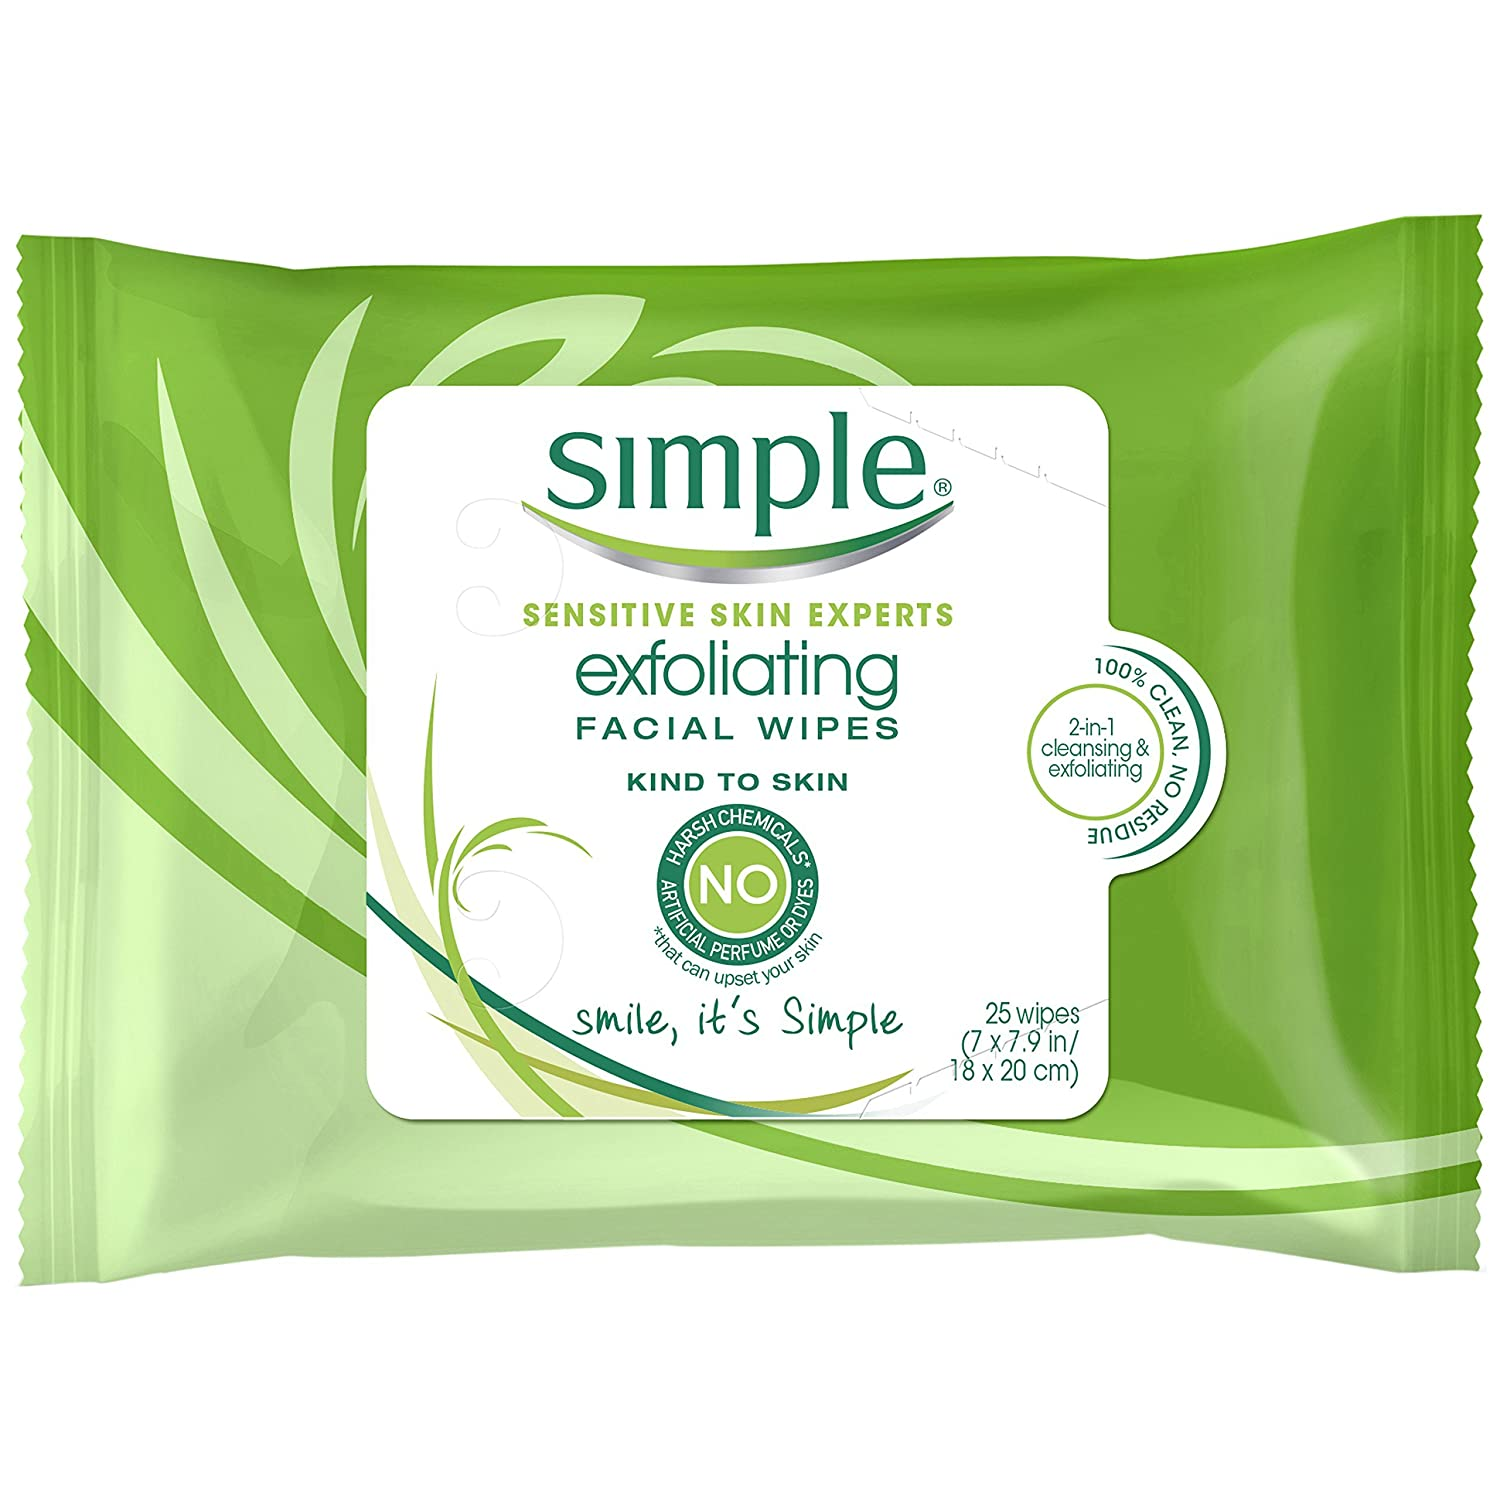 Simple Facial Wipes, Kind to Skin Exfoliating 25 ct 10087300700042